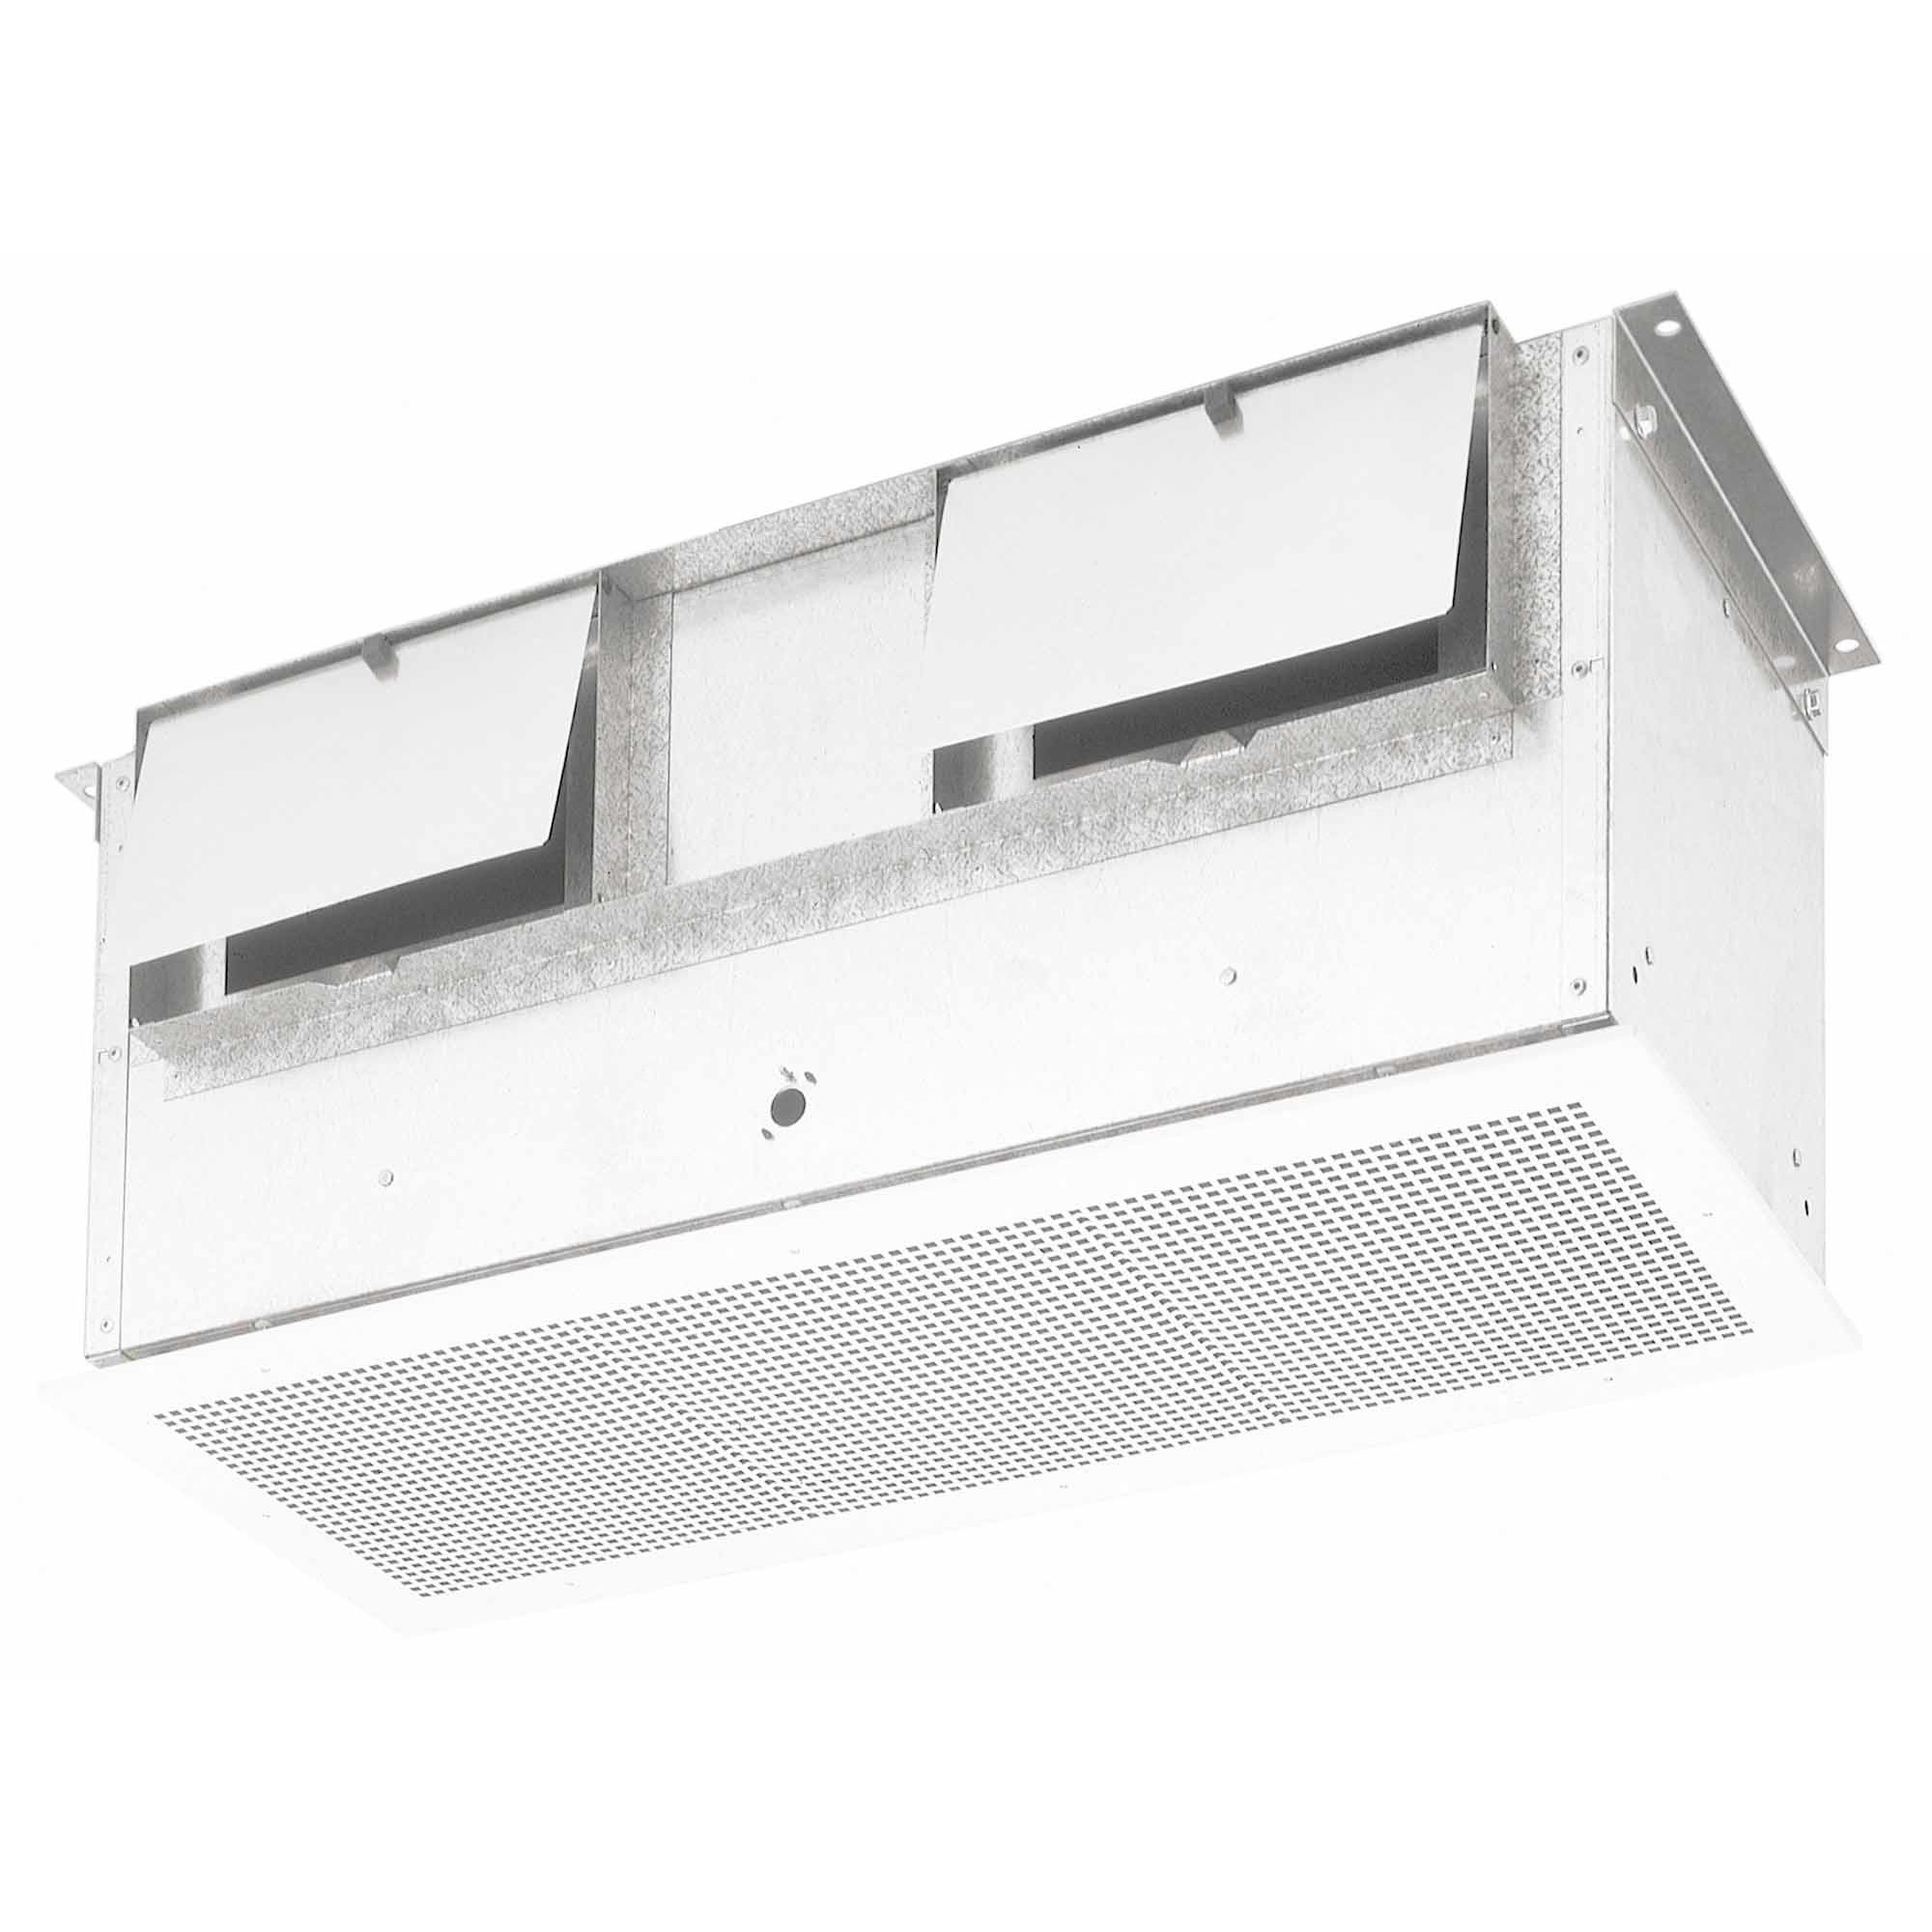 Broan Bathroom Fan | Broan Exhaust Fans | Wall Mounted Exhaust Fan